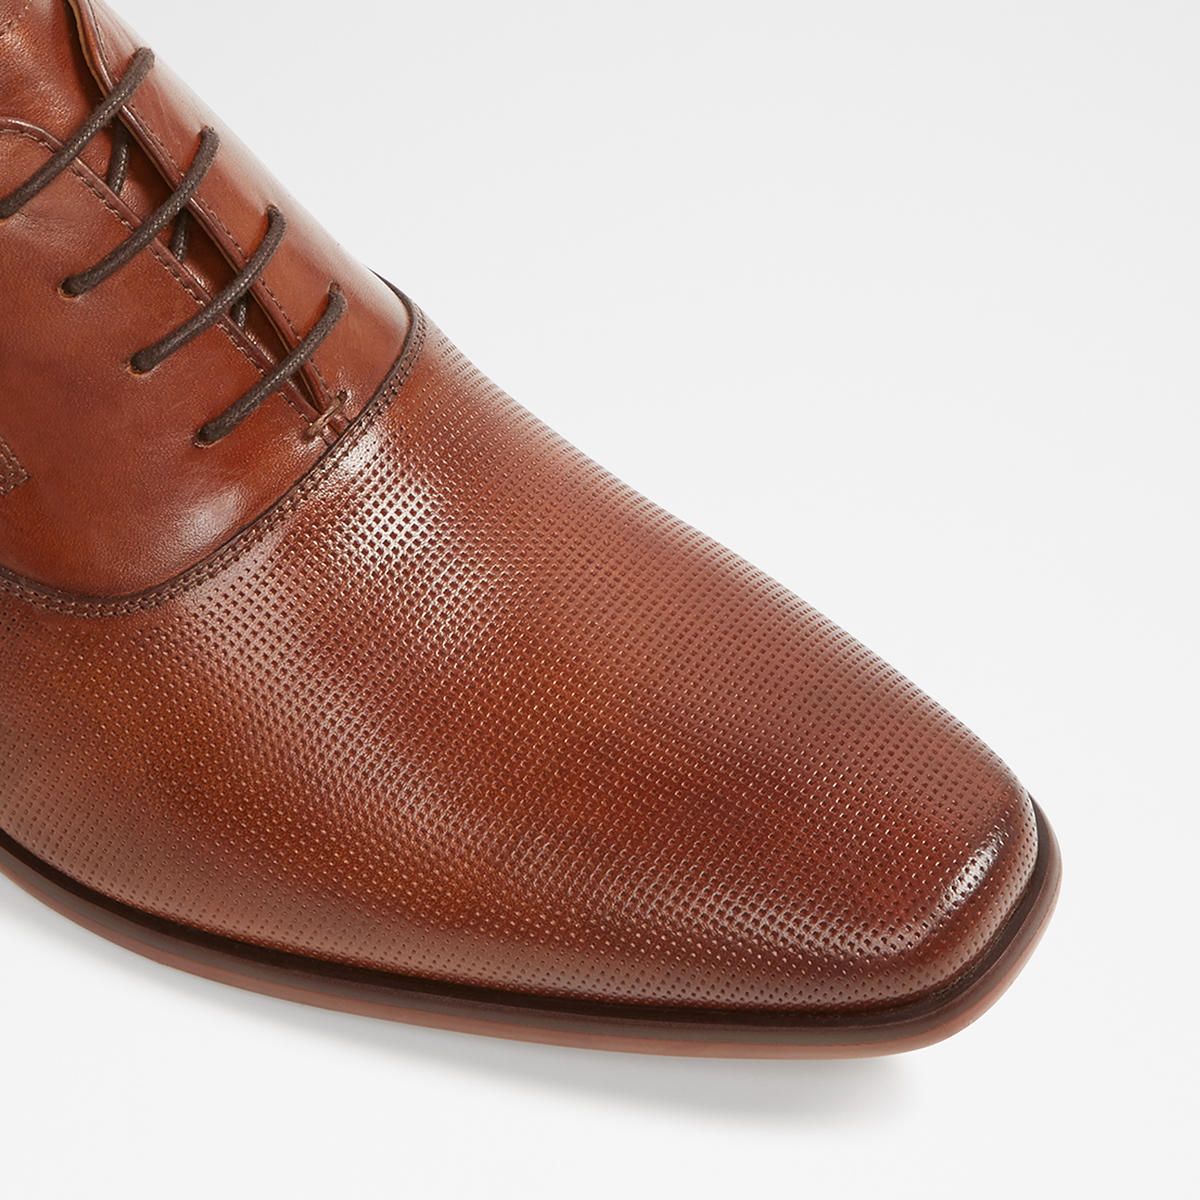 Oliliria Cognac Men S Dress Shoes Aldoshoes Com Us